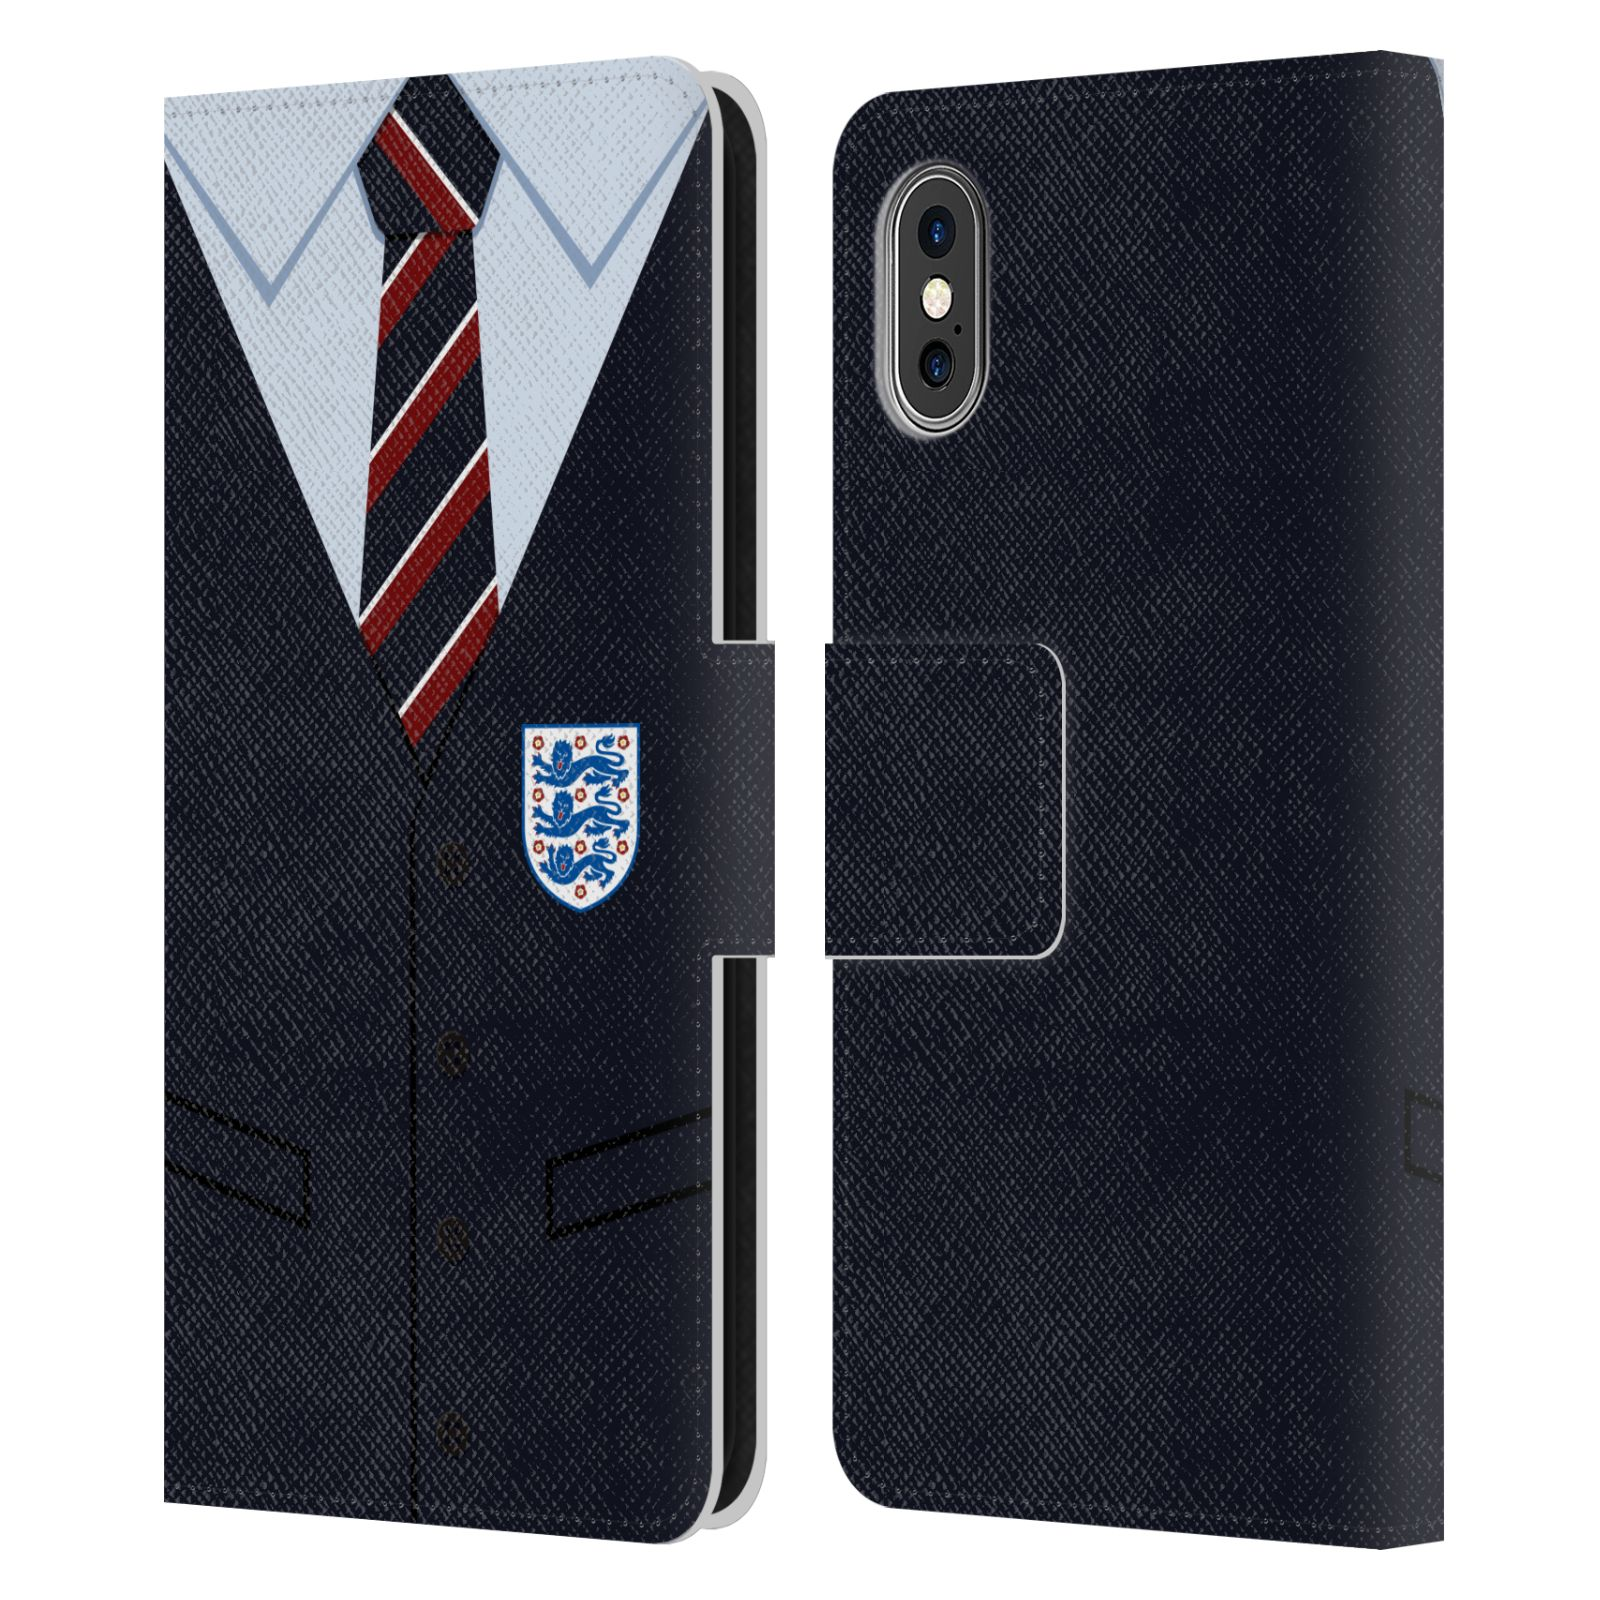 Official England National Football Team 2018/19 Crest Southgate Waistcoat Leather Book Wallet Case For Apple iPhone X / iPhone XS